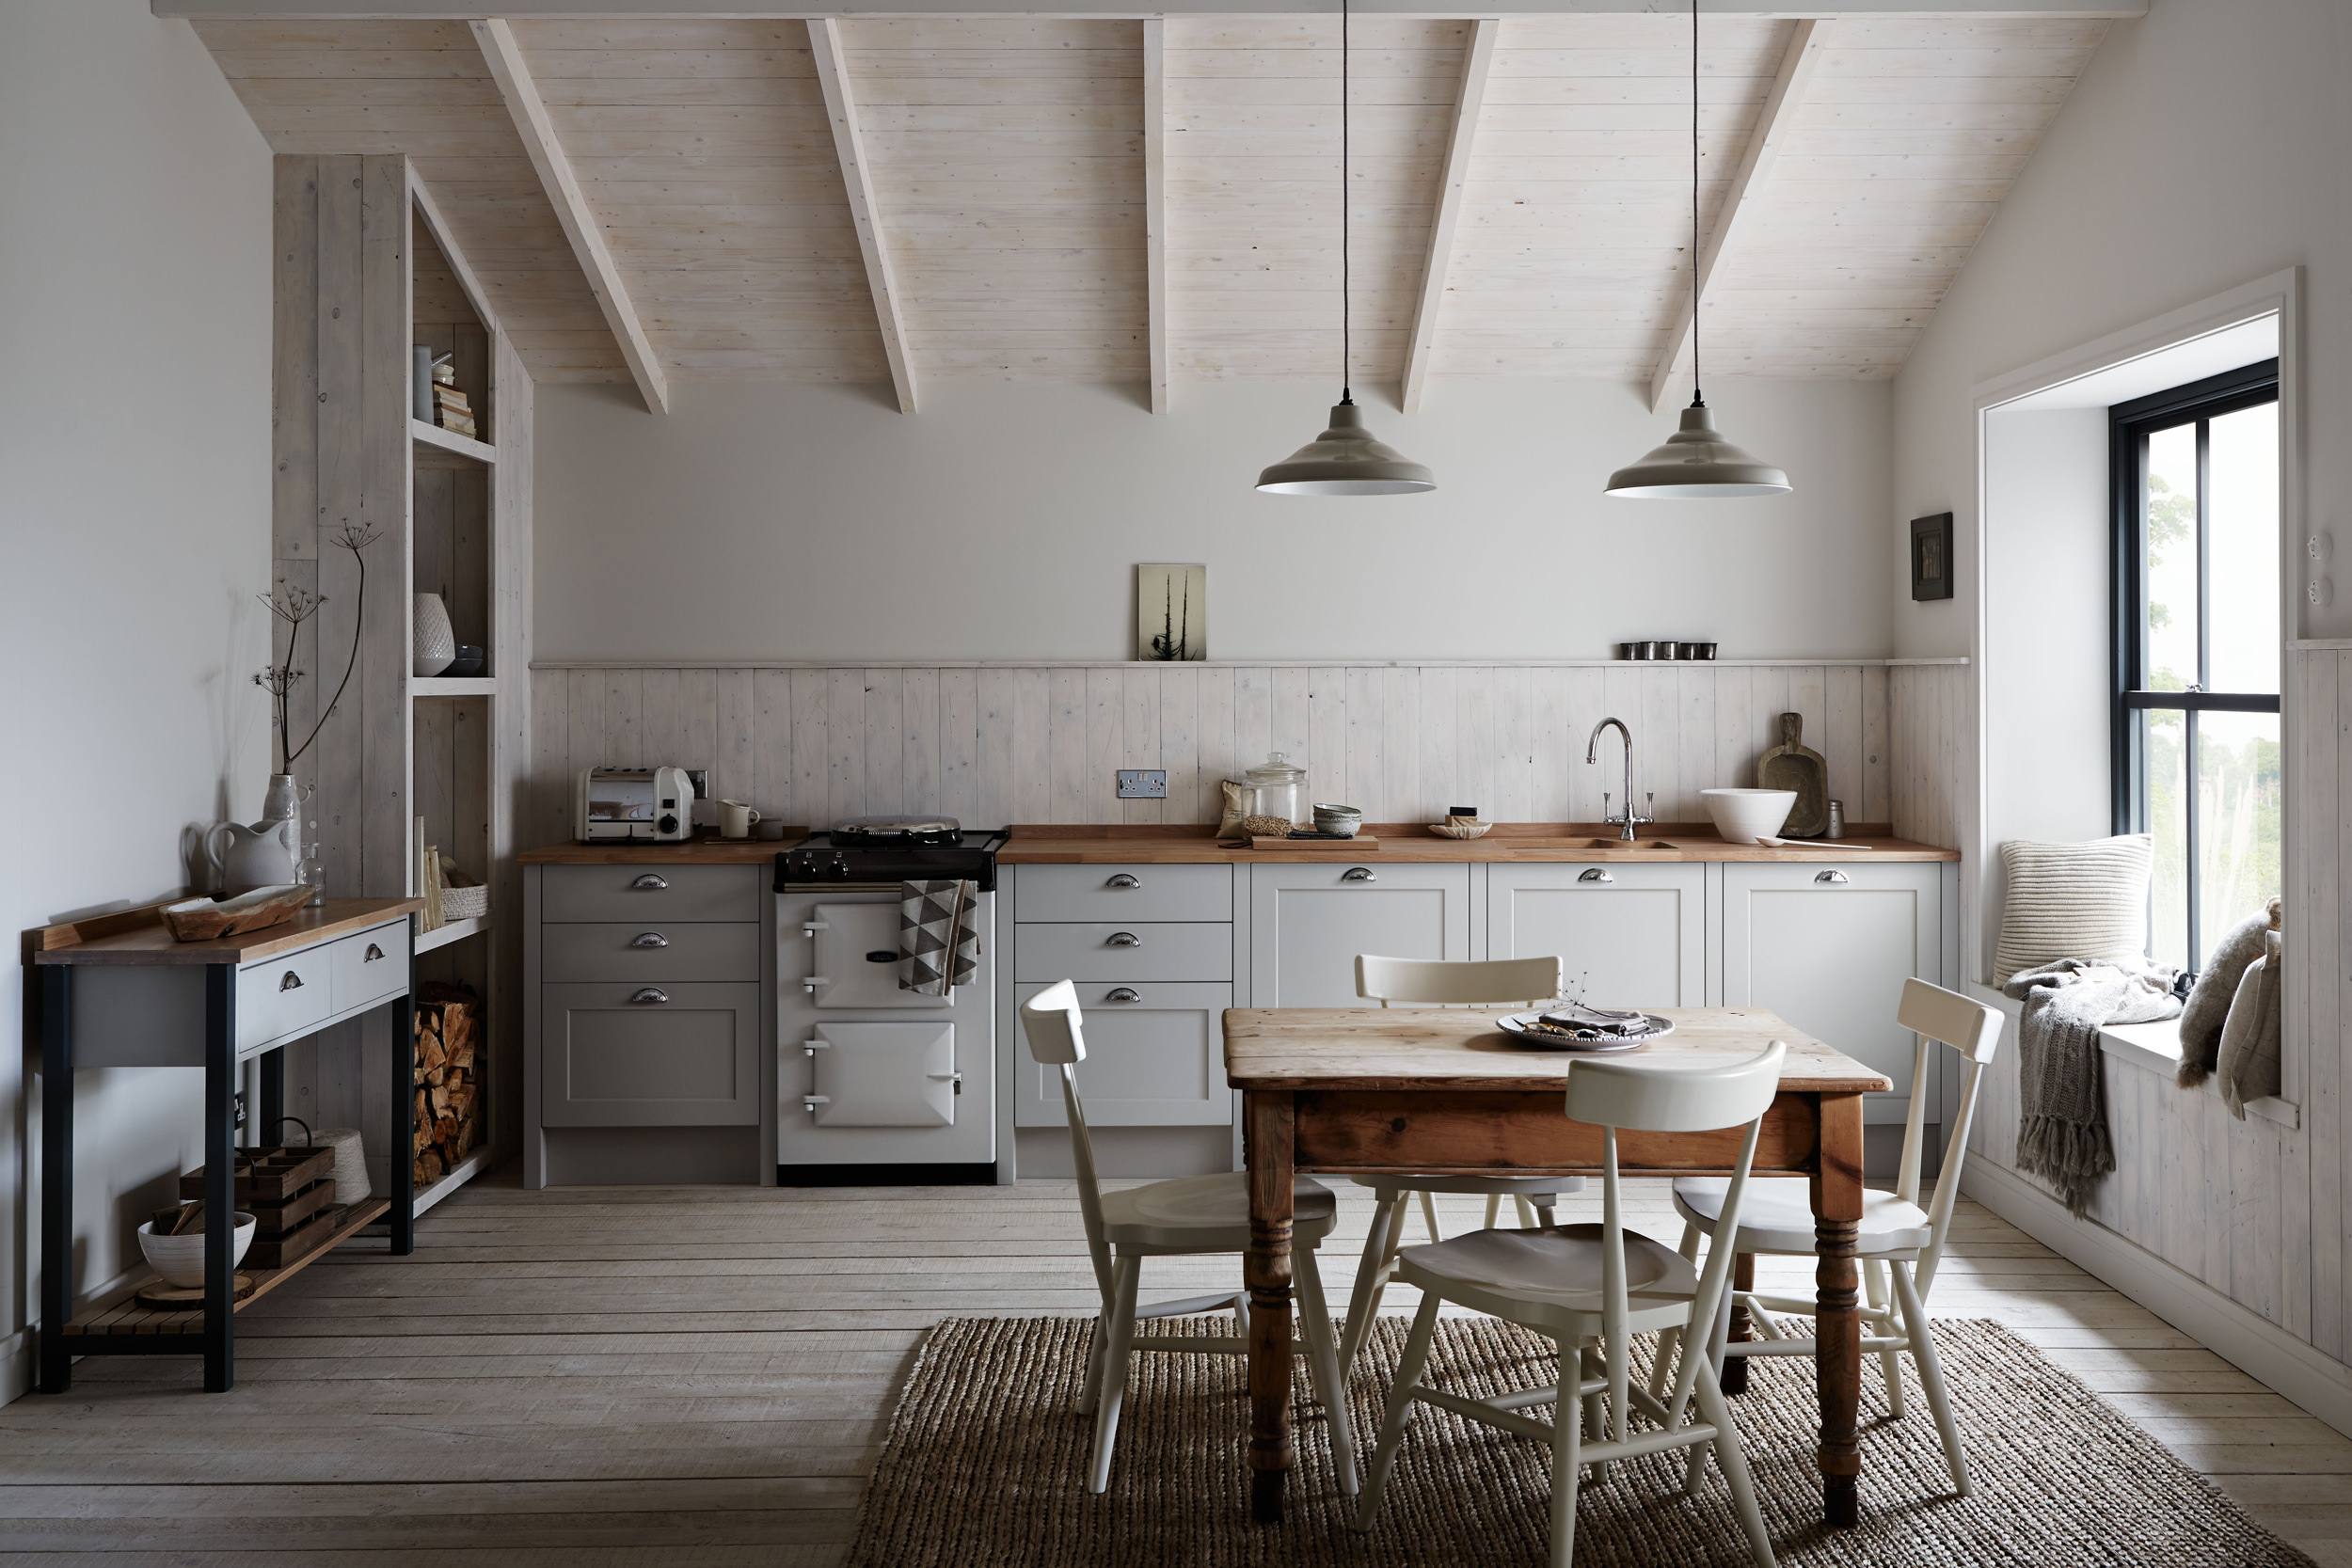 Kitchen trends Emily Henderson Design Trends 2018 Kitchen without wall units 06 HUCASGN